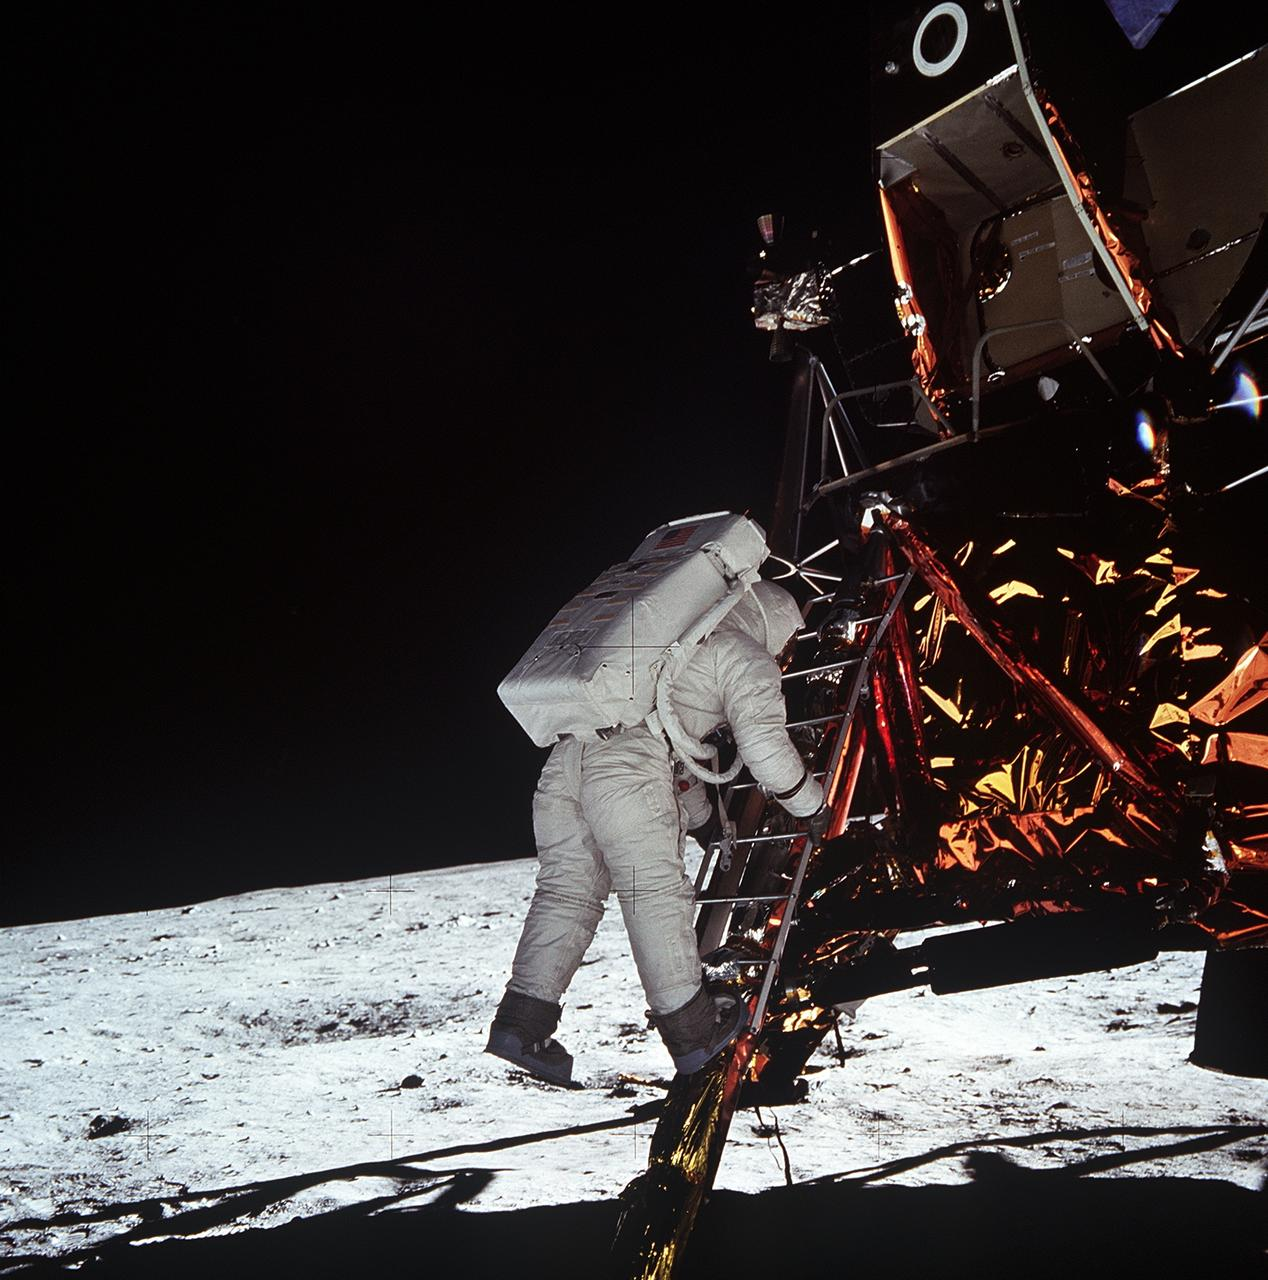 (20 July 1969) --- Astronaut Edwin E. Aldrin Jr., lunar module pilot, descends the steps of the Lunar Module (LM) ladder as he prepares to walk on the moon. He had just egressed the LM. This photograph was taken by astronaut Neil A. Armstrong, commander, with a 70mm lunar surface camera during the Apollo 11 extravehicular activity (EVA). While Armstrong and Aldrin descended in the LM